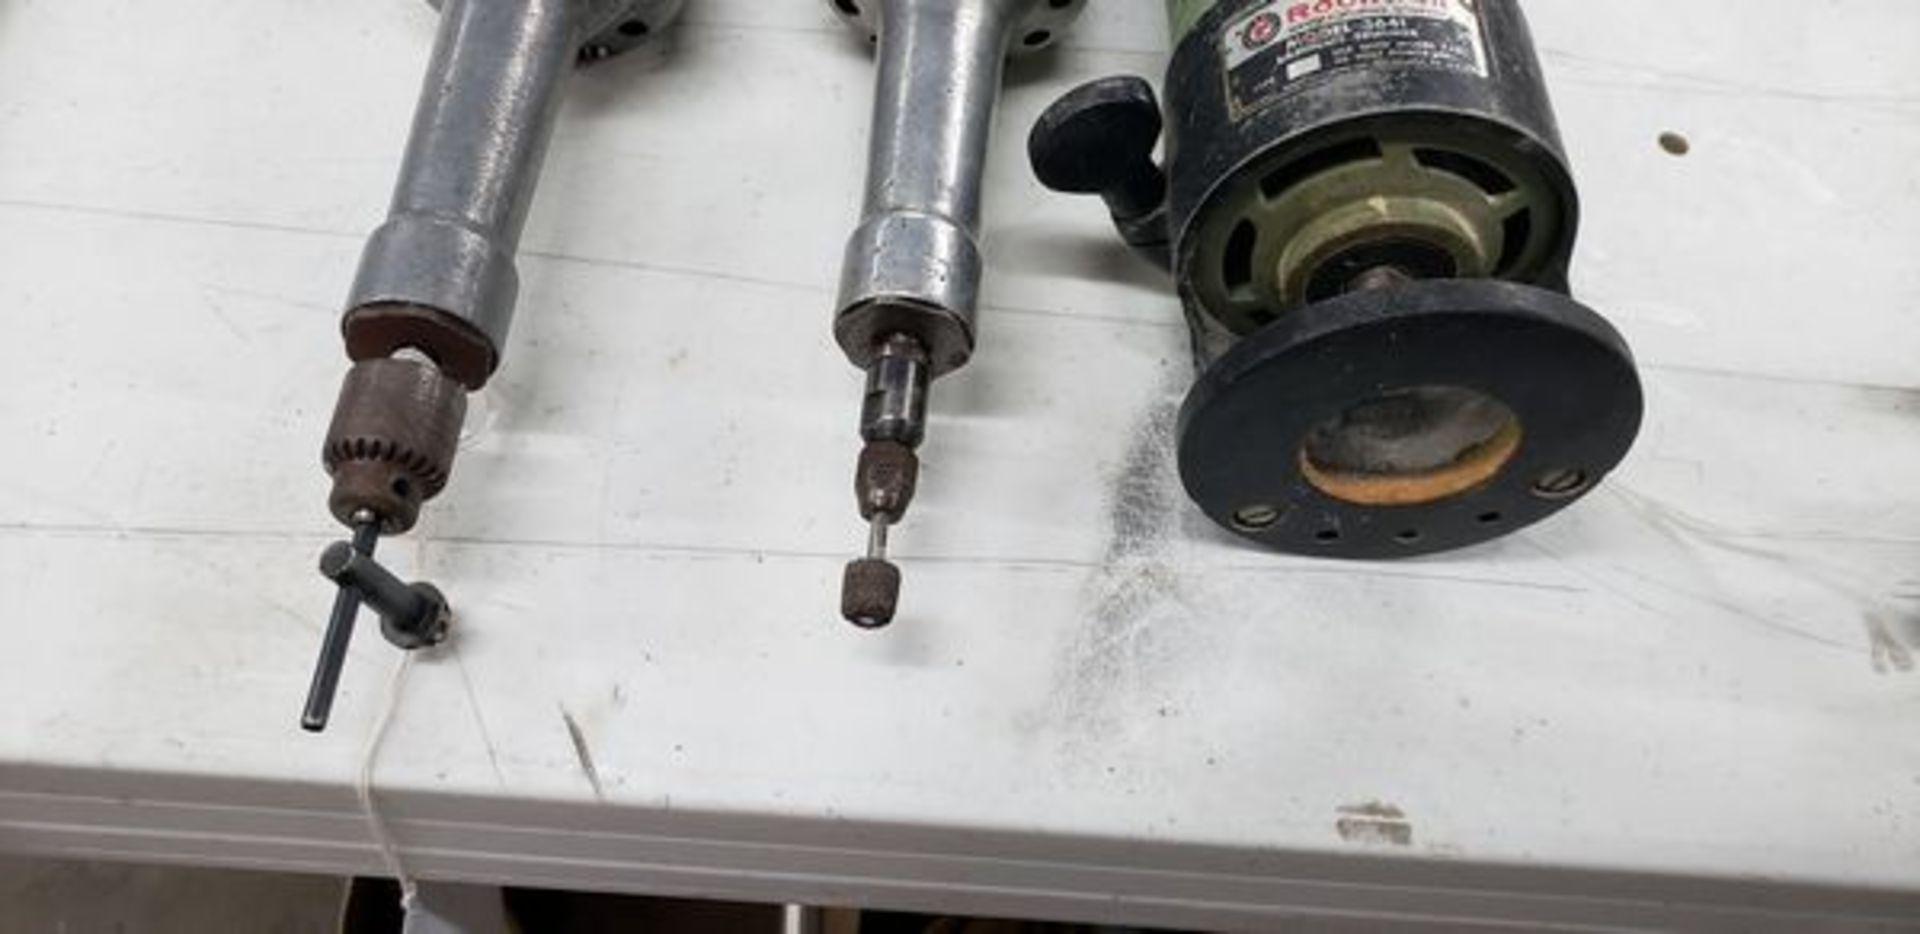 PNEUMATIC DREMMEL TOOLS AND LAMINATE TRIMMER - Image 5 of 5